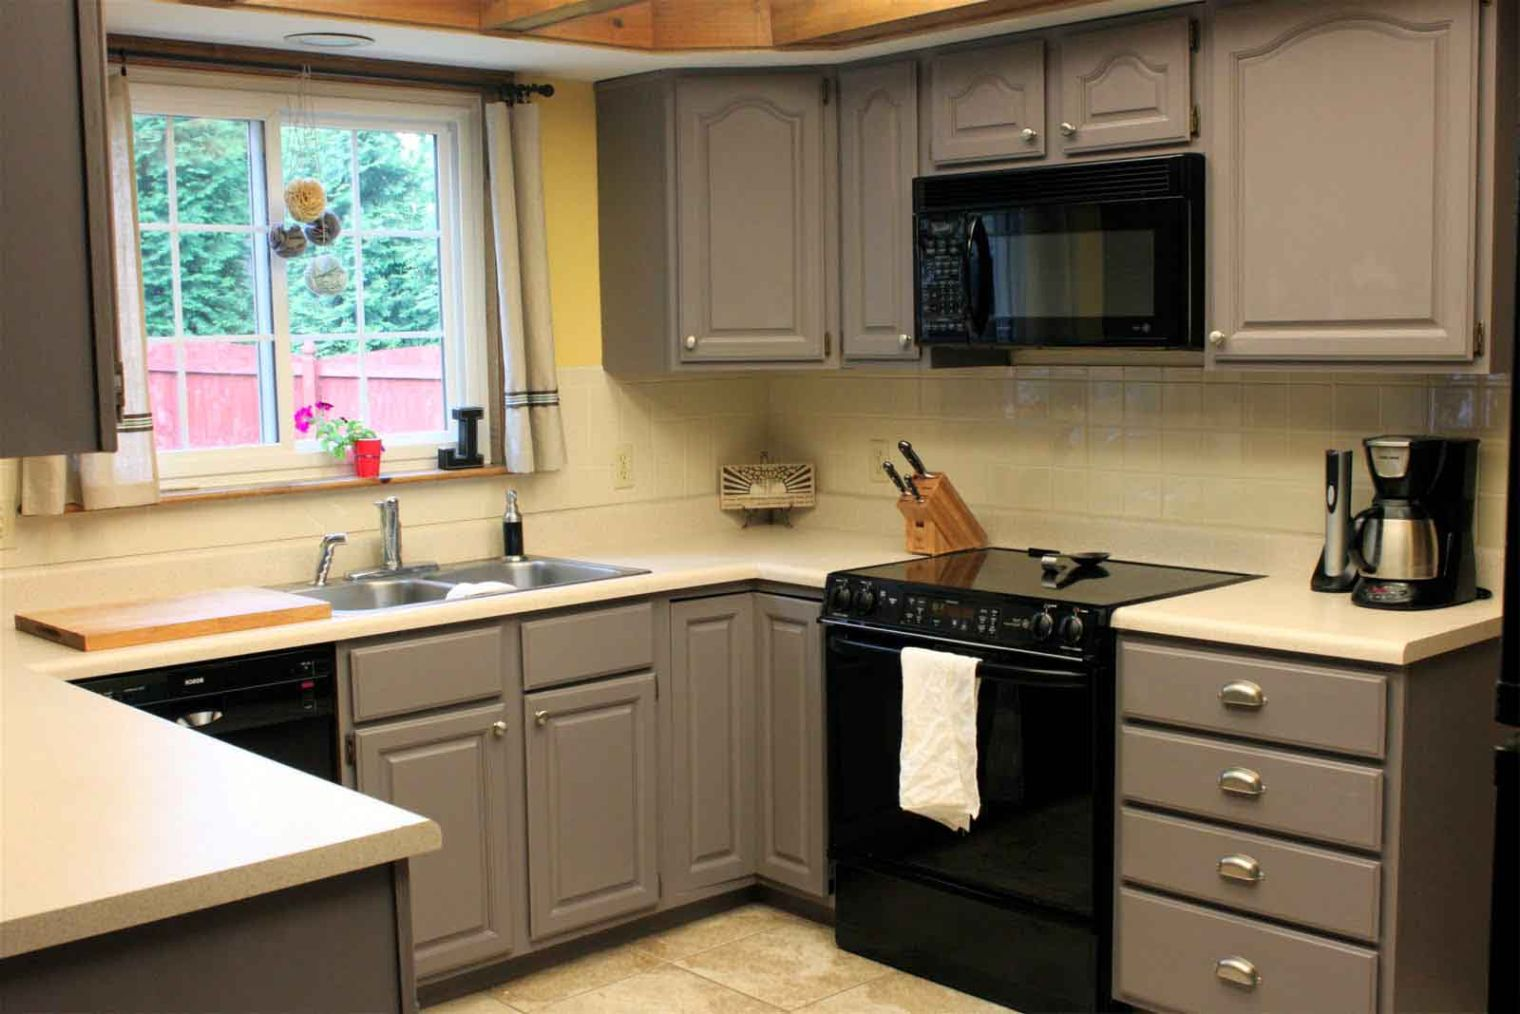 Grey painted kitchen cabinets in small kitchen space for Are painted kitchen cabinets in style